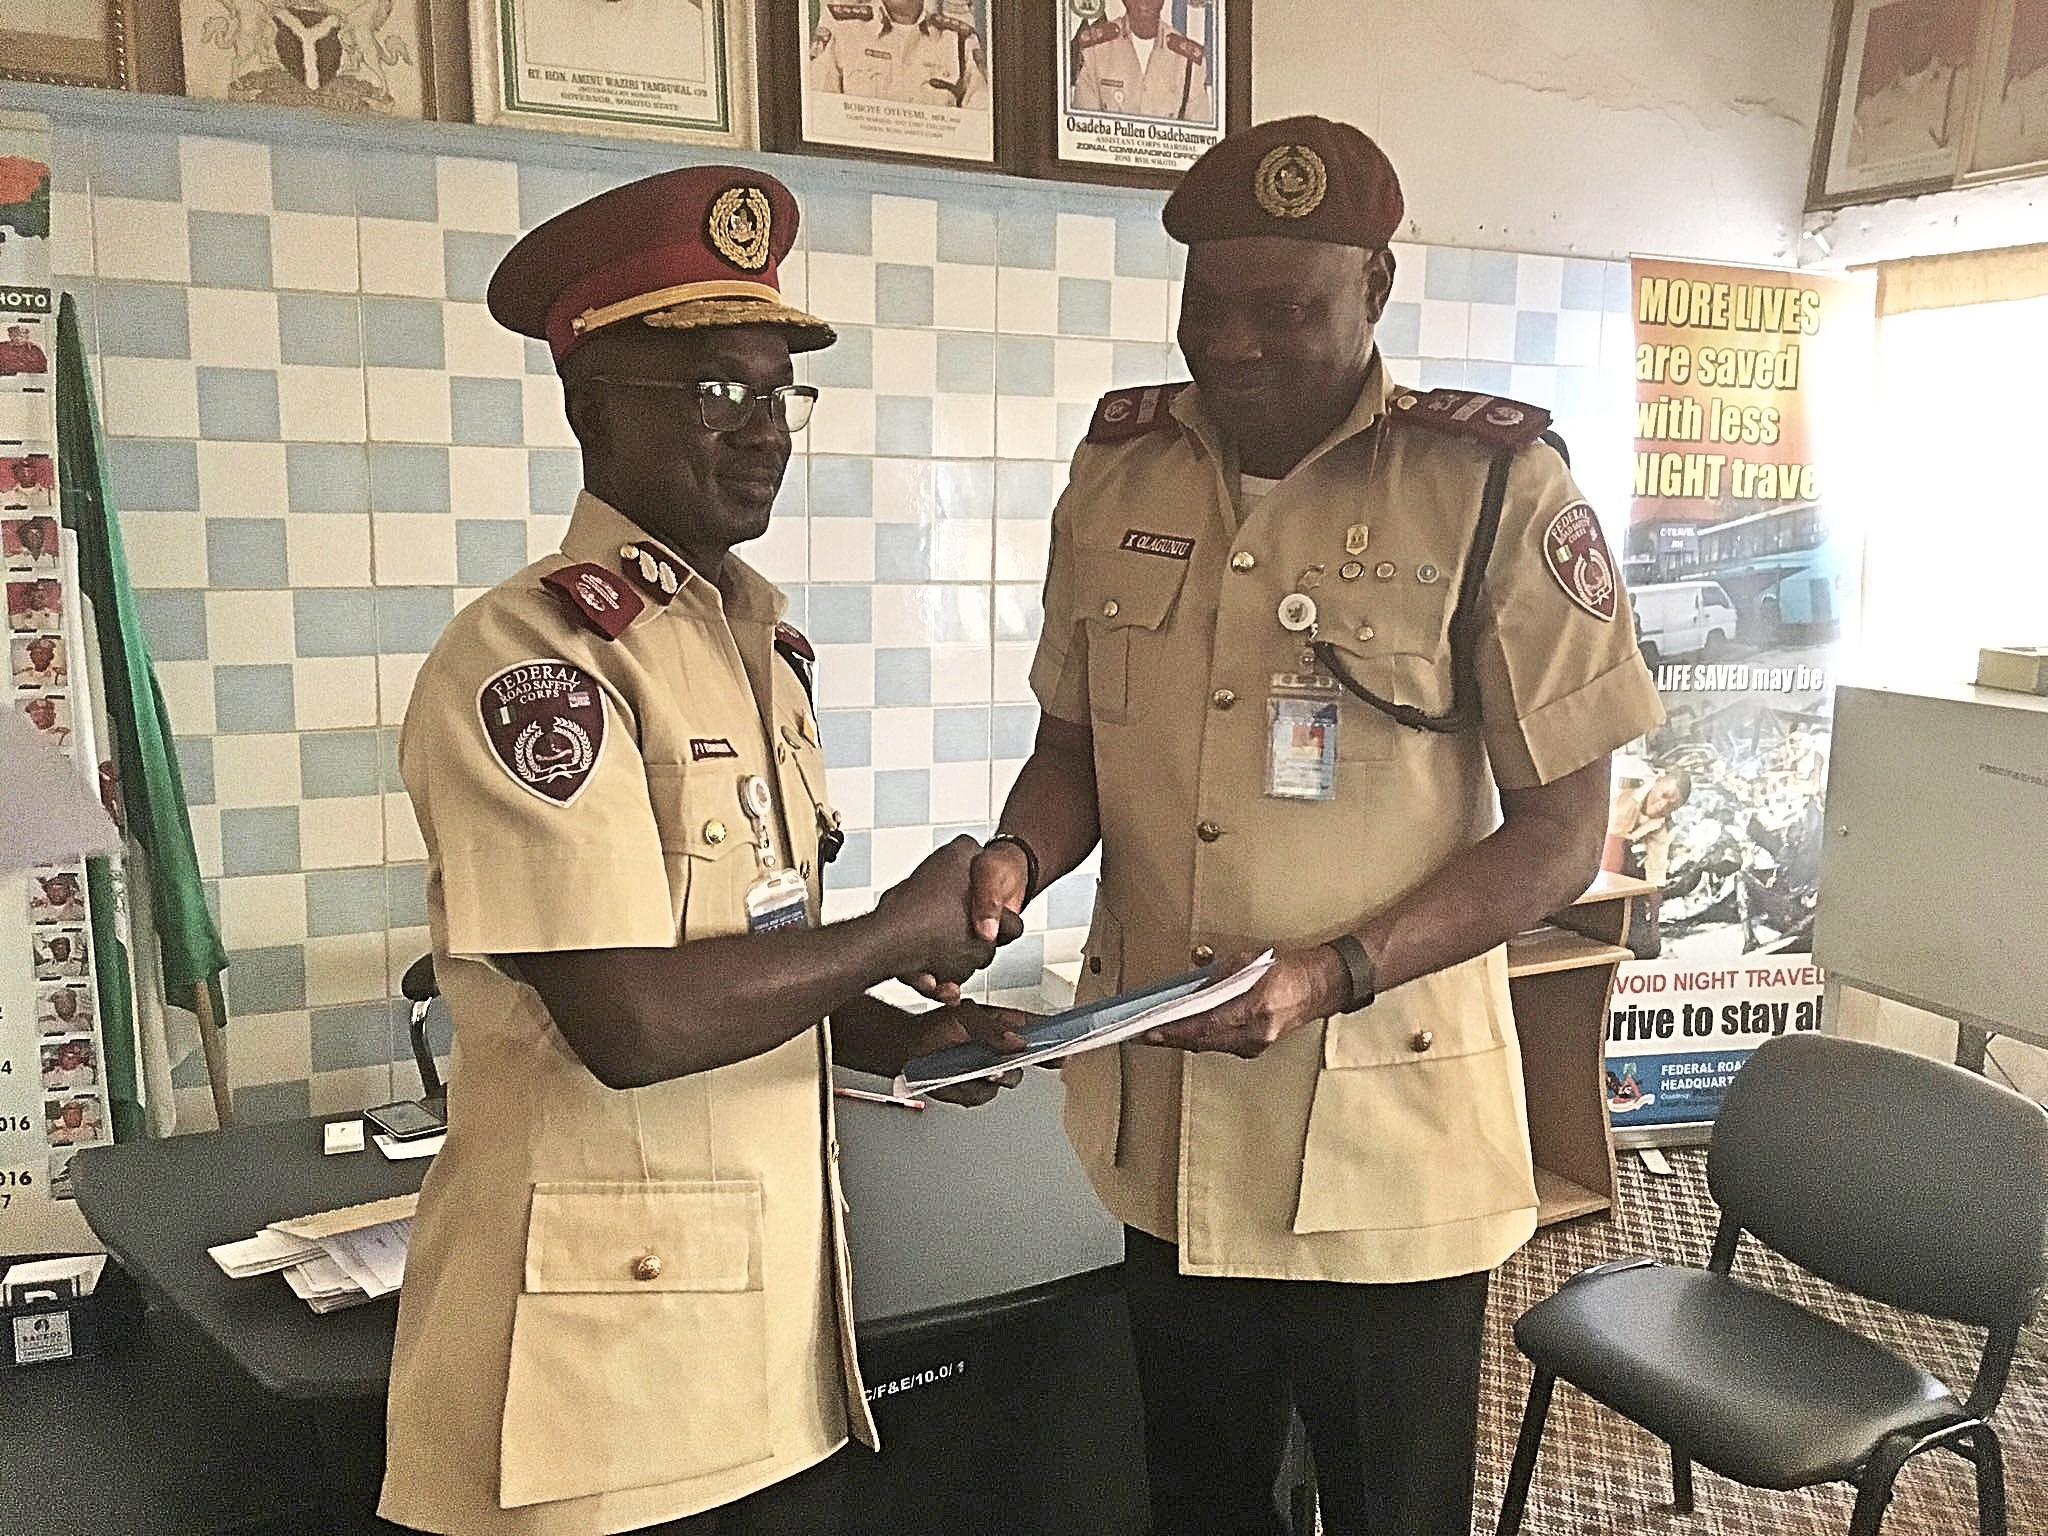 Fotor 154842092636046 - FRSC lauds Sokoto, others on plate number enforcement success